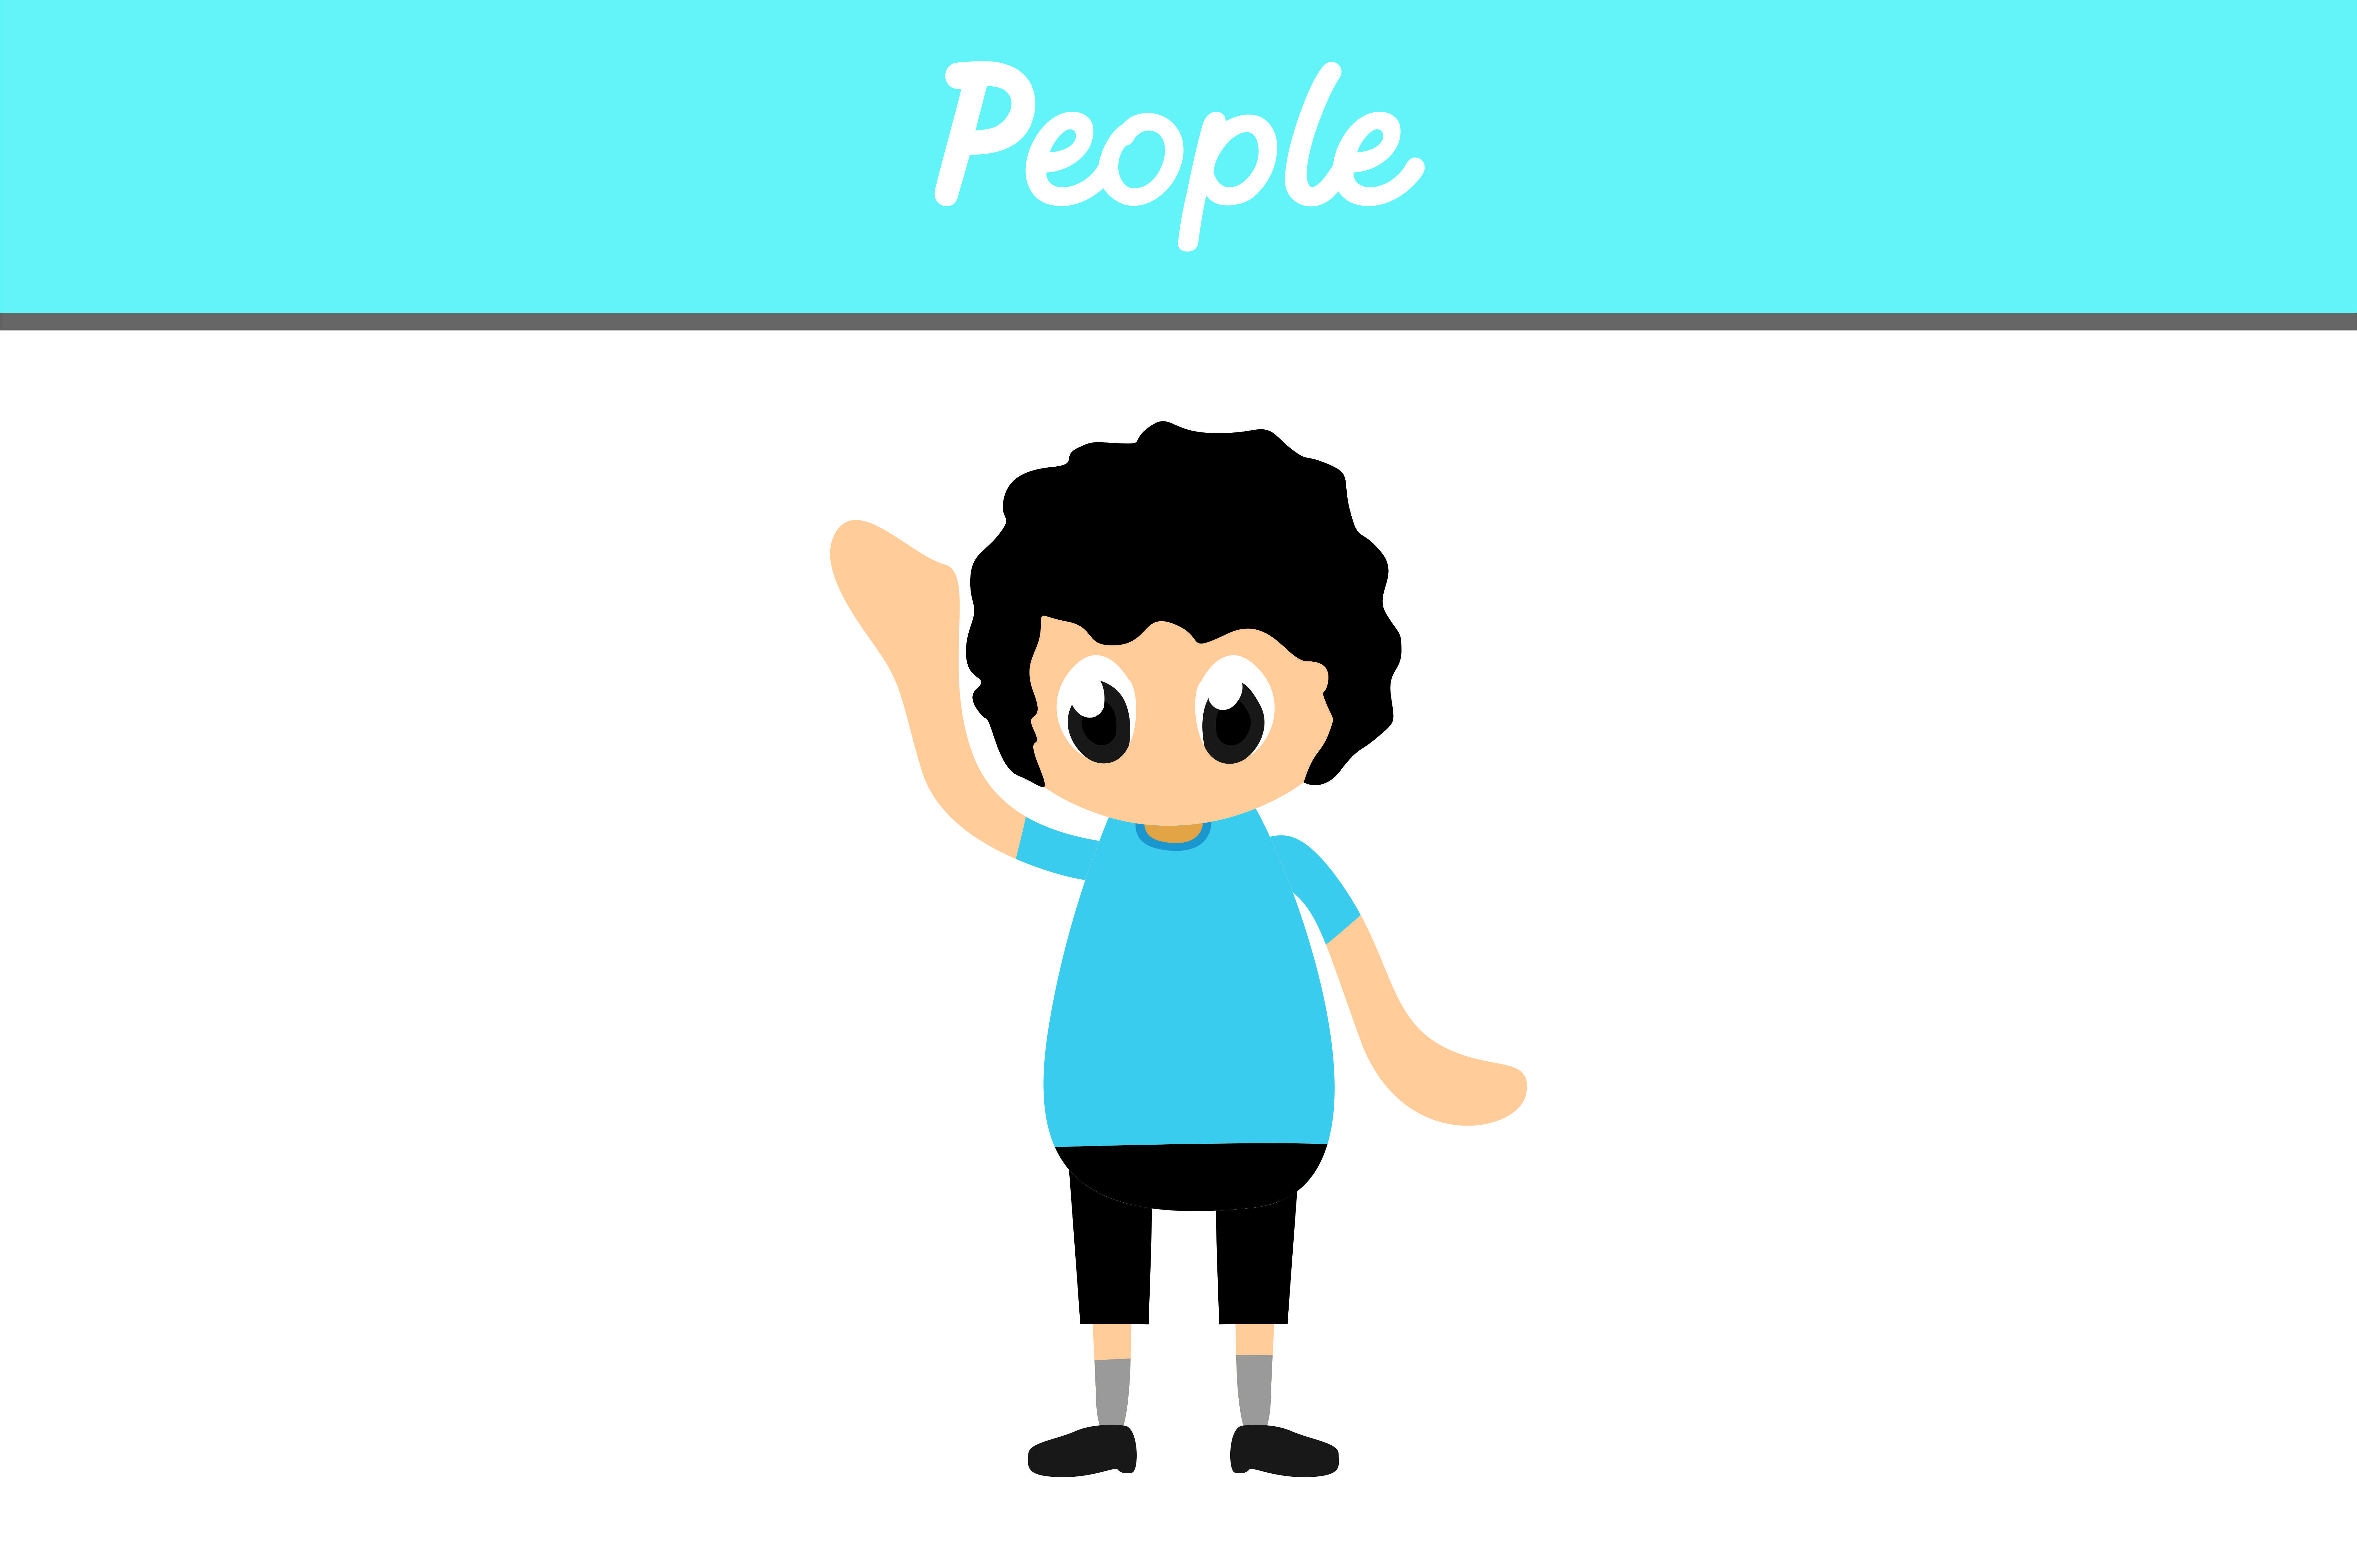 Download Free Cute People Vector Graphic By Arief Sapta Adjie Creative Fabrica for Cricut Explore, Silhouette and other cutting machines.